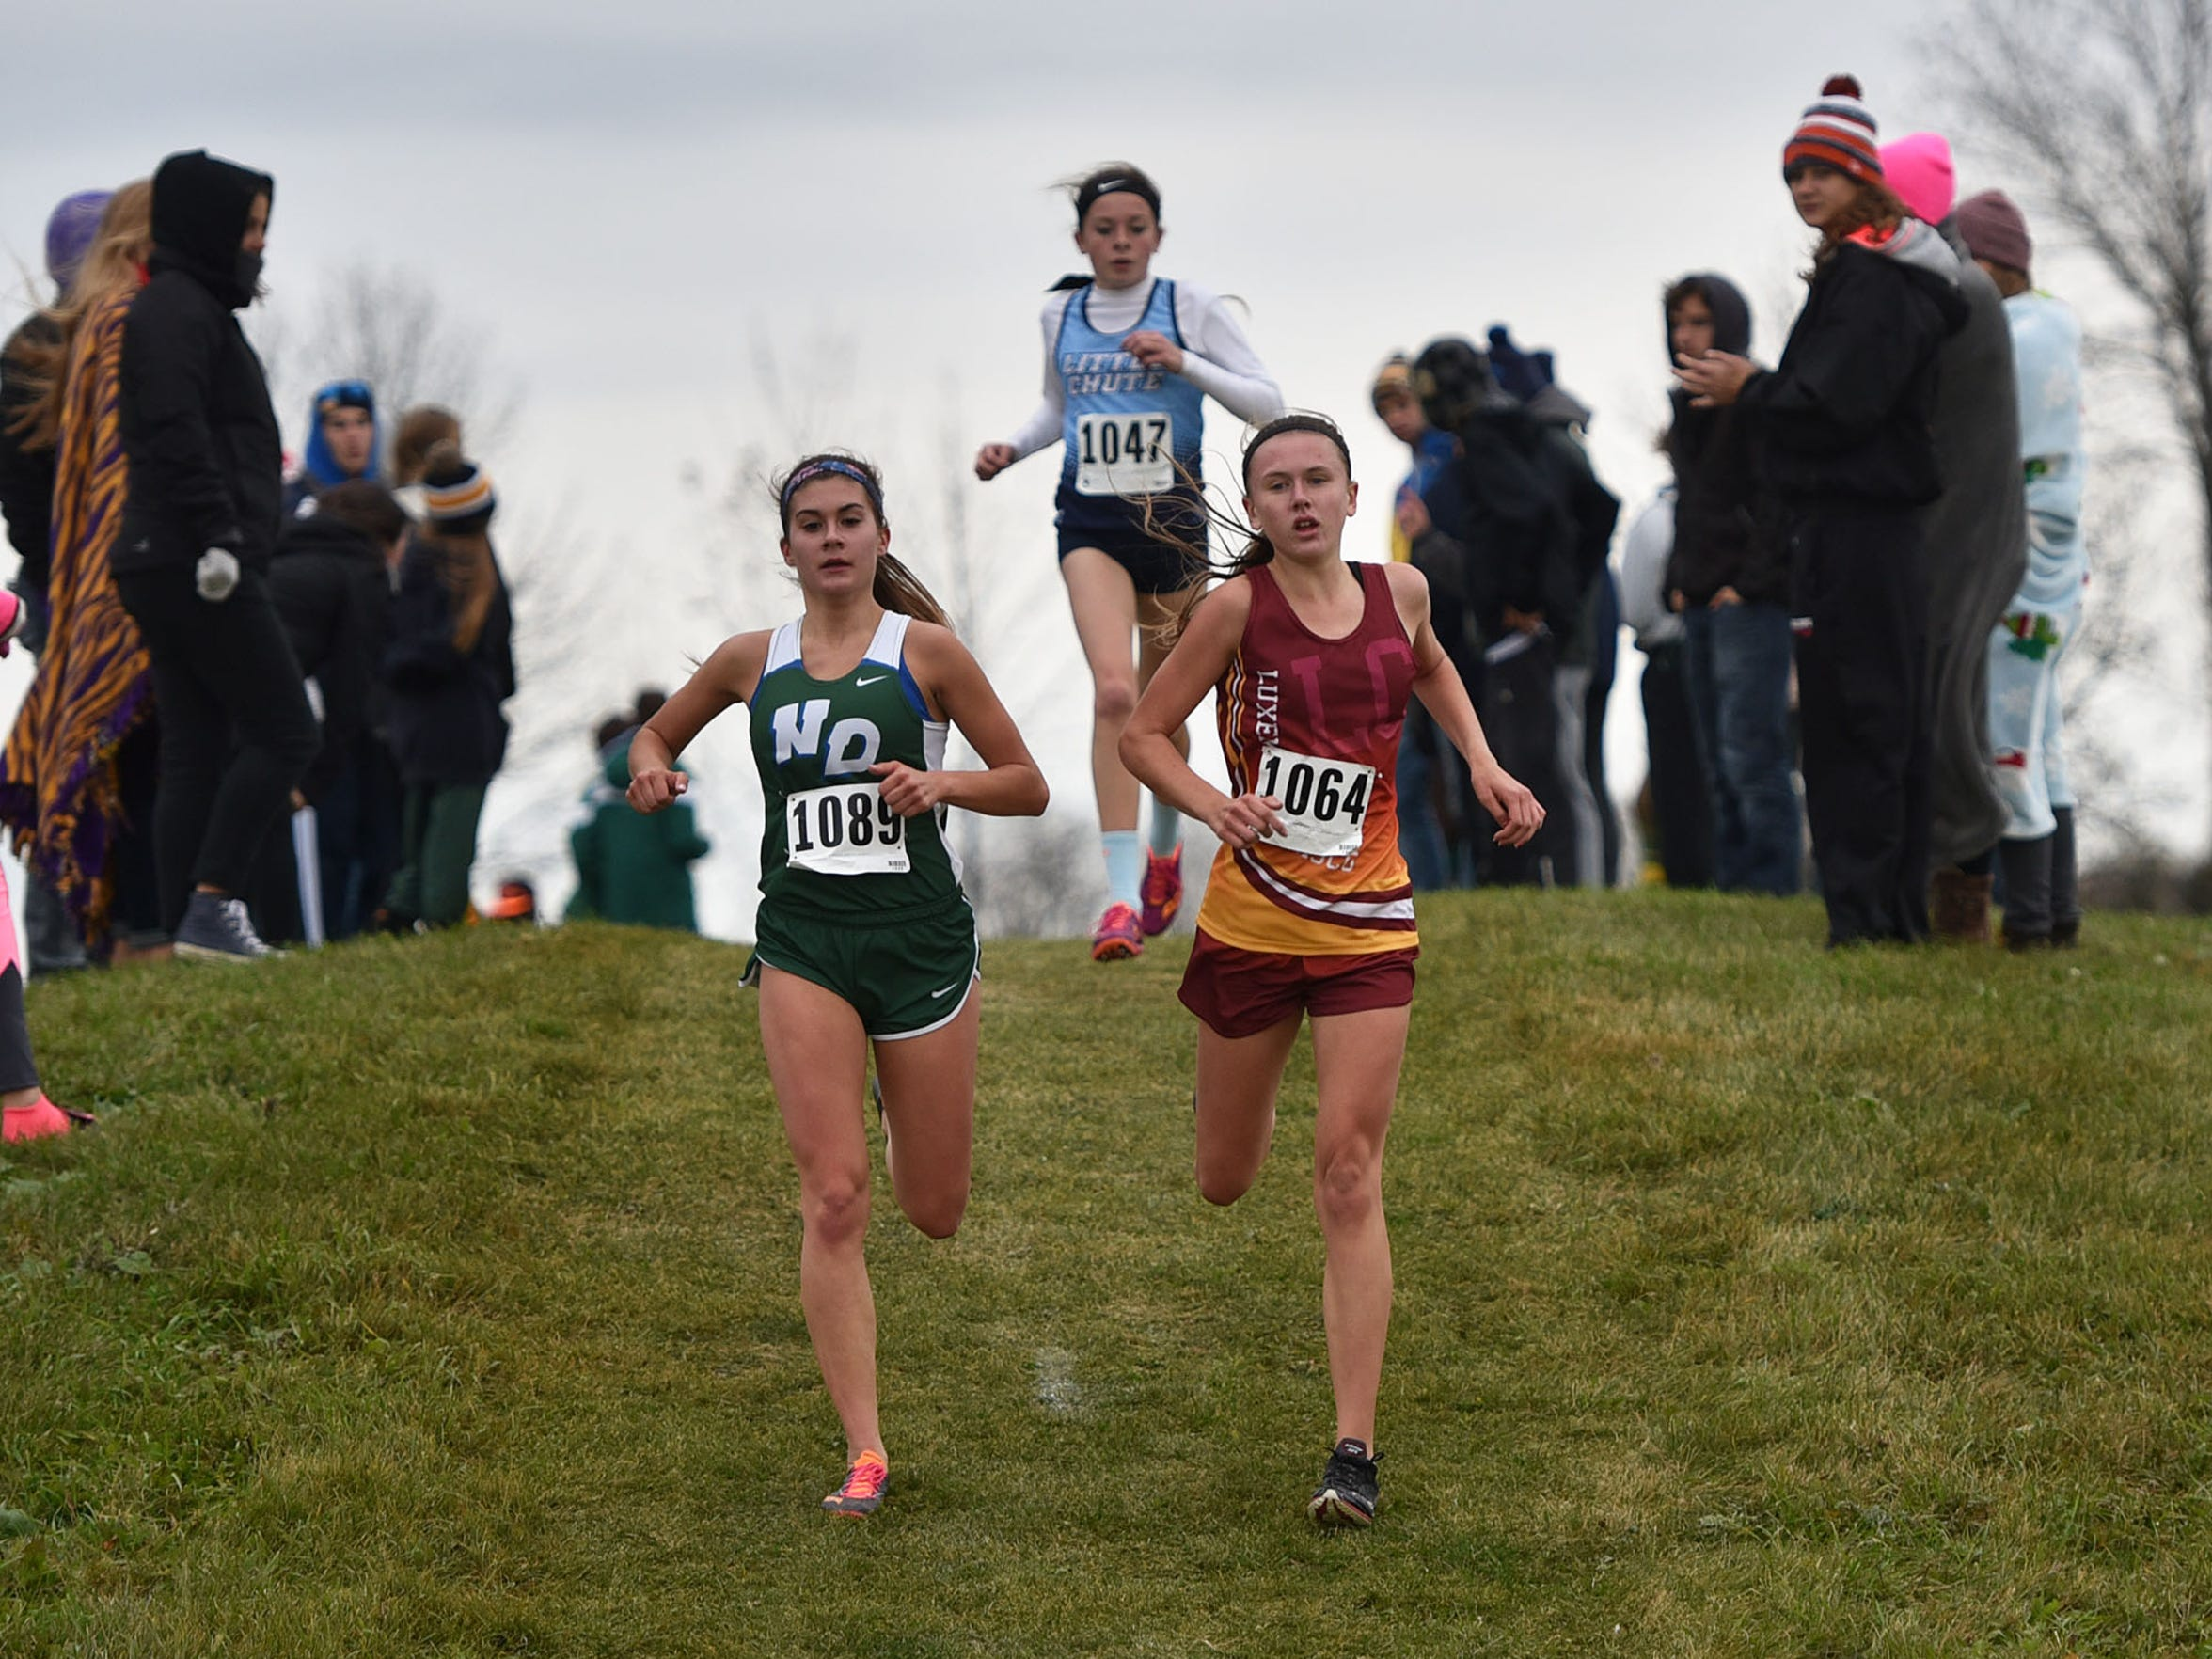 Luxemburg-Casco's Jacie Legois, right, races with Green Bay Notre Dame's Maria Ehlinger at the WIAA Division 2 Two Rivers sectional.